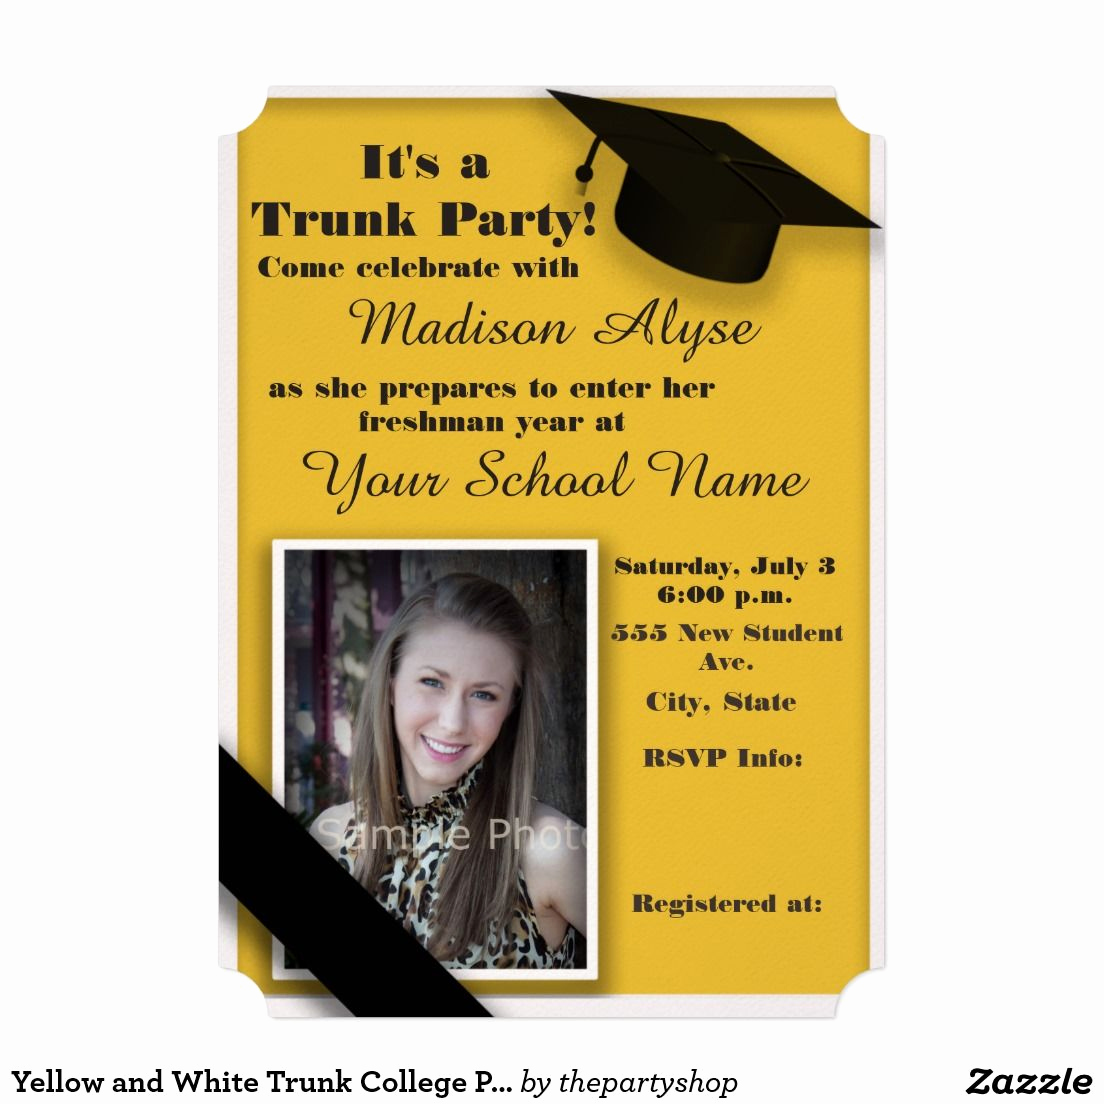 Trunk Party Invitation Wording Elegant Yellow and White Trunk College Party Invitation